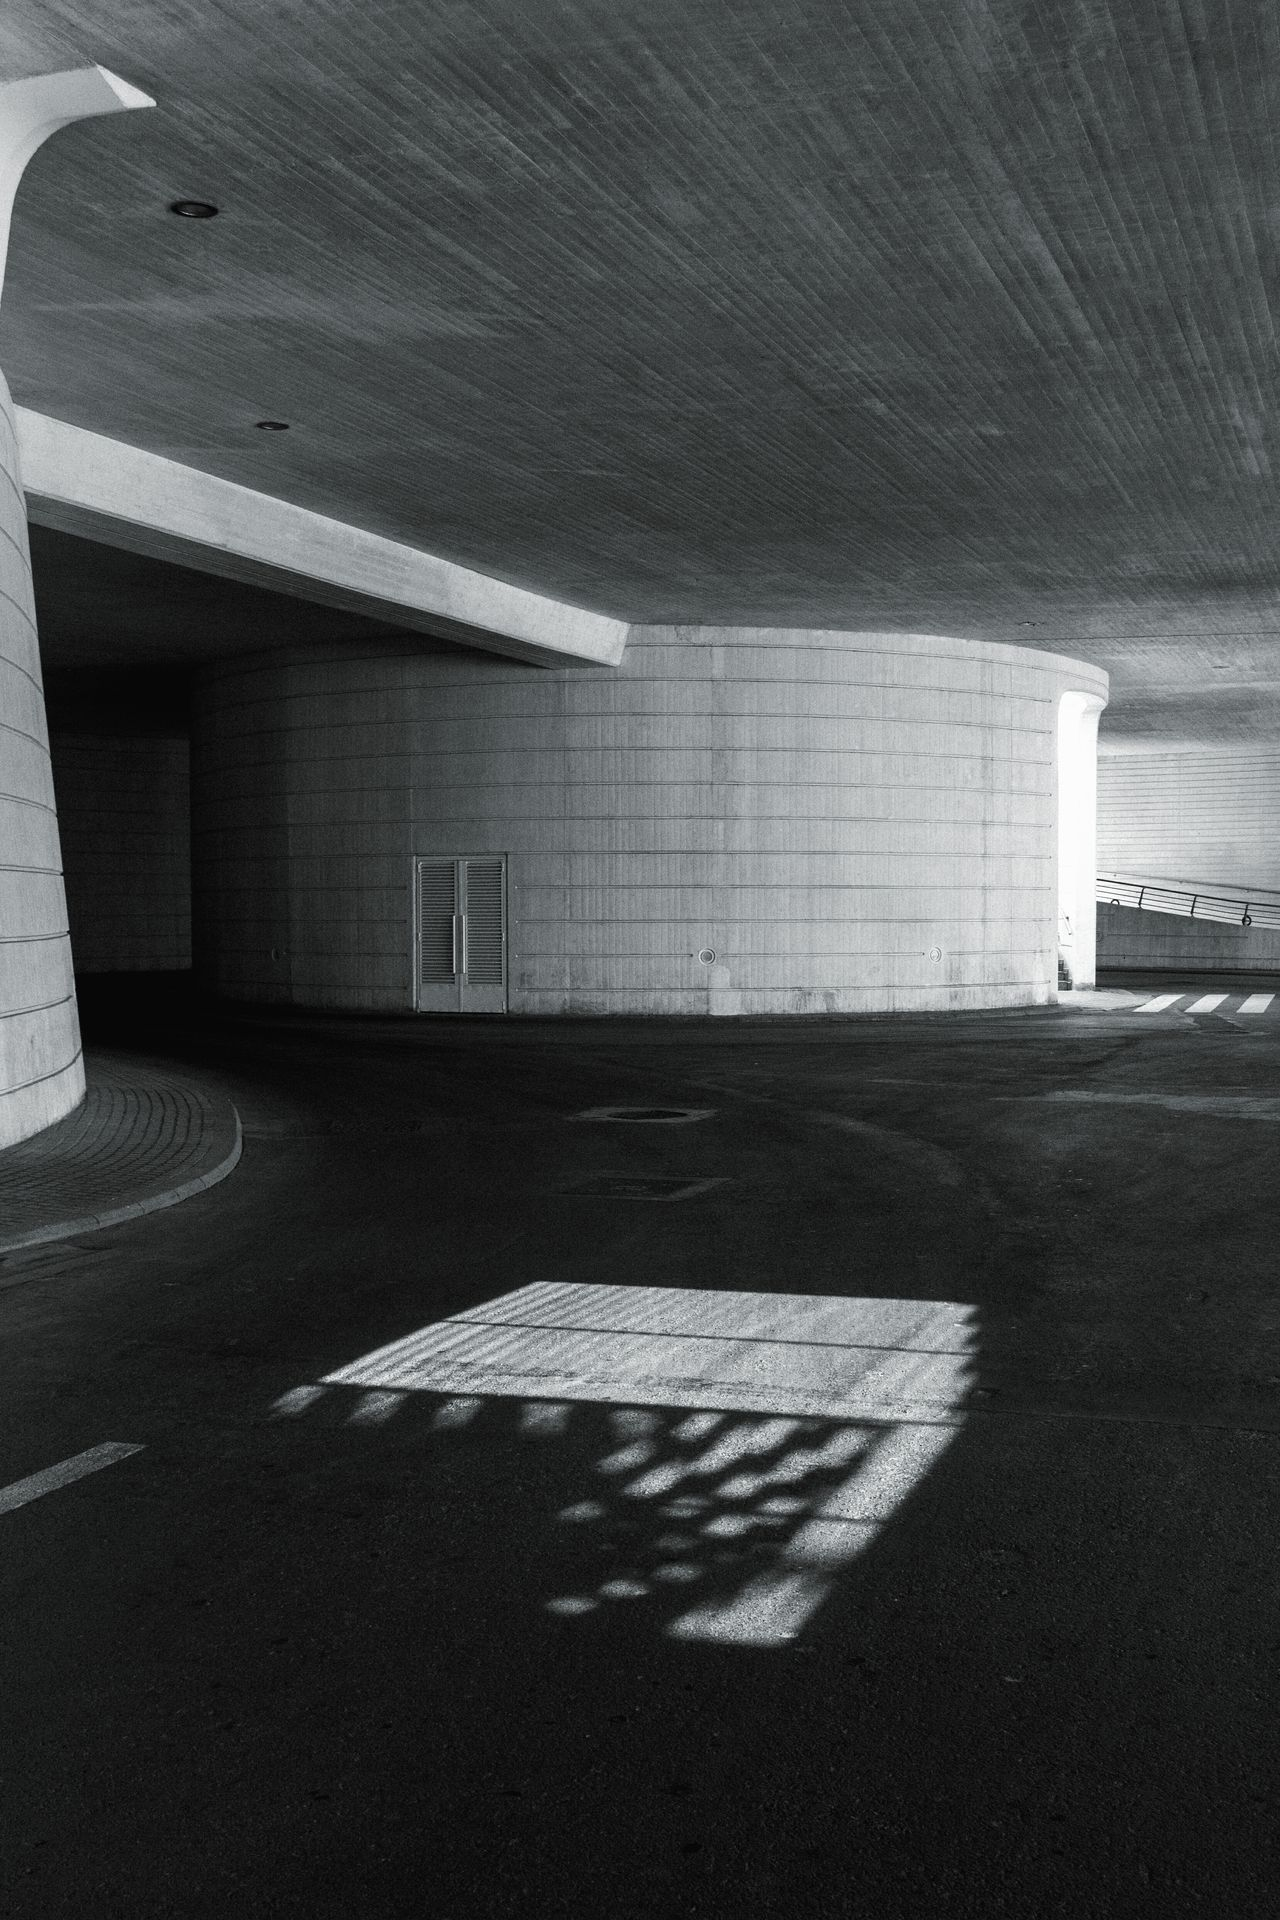 Architecture No People Architecture Built Structure Indoors  Day Sunlight Modern Building Modern Architecture Black And White Architecture B&w Architecture Cityscape Stairway Black And White B&w Photography B&w Street Photography Architecture_collection Simple Architecture B&w Modern Architecture Simple Photography Shape Simple Shadow And Light València ArtWork